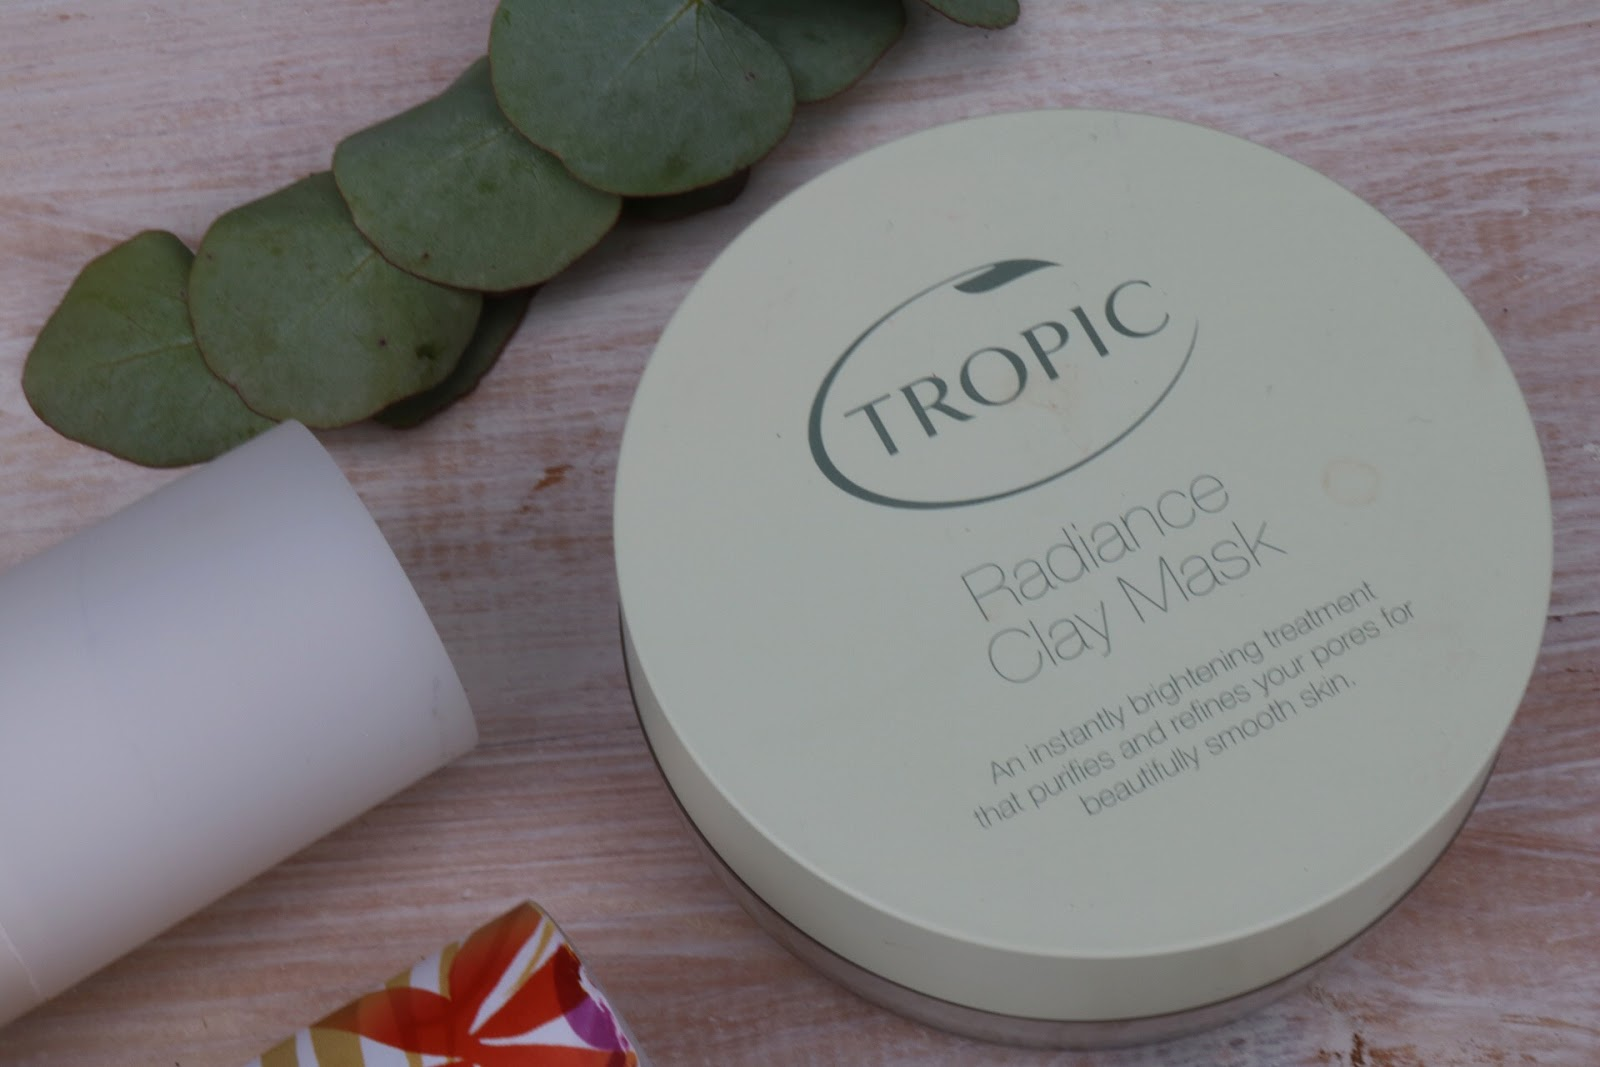 Tropic - Radiance Clay Mask